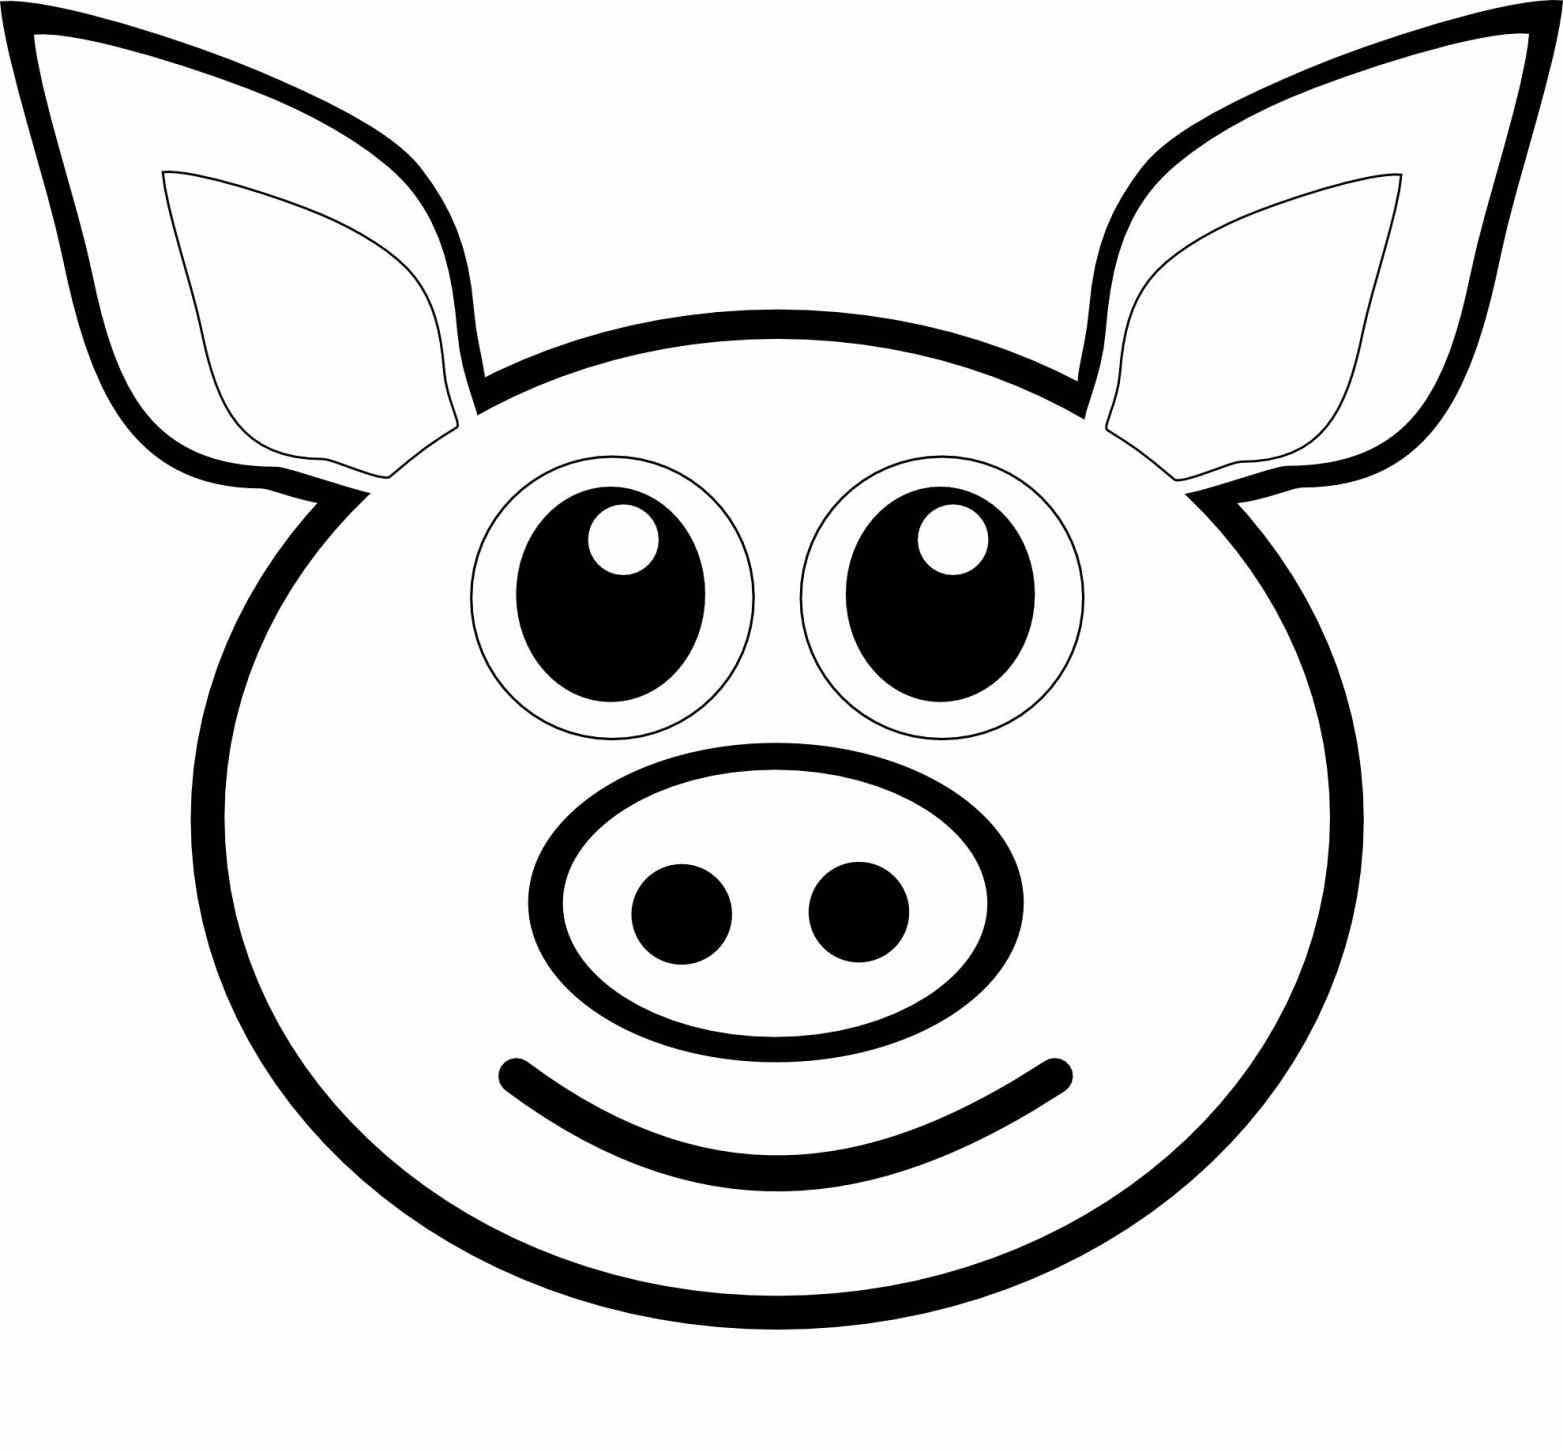 Minecraft Pig Drawing at GetDrawings | Free download